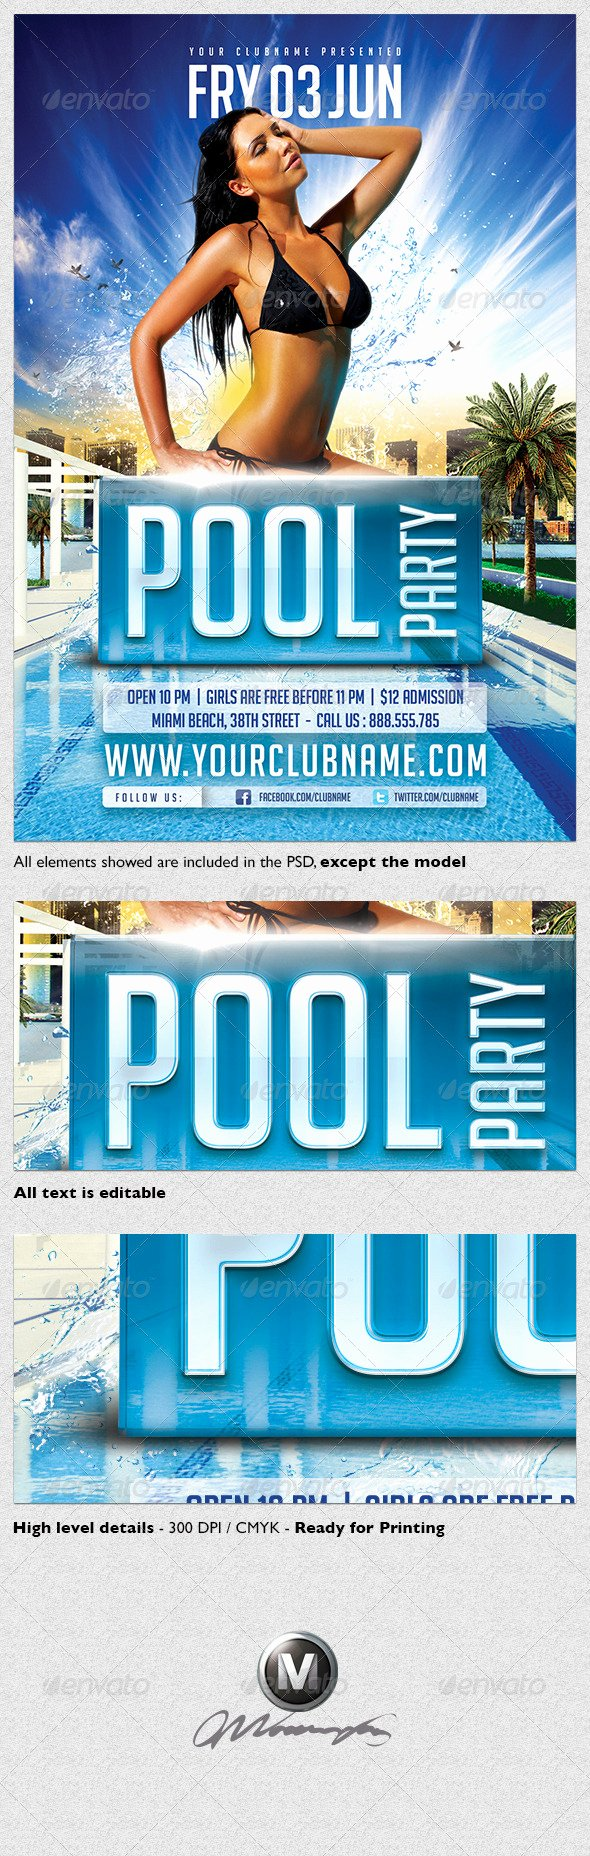 Pool Party Flyer Template Graphicriver Item for Sale